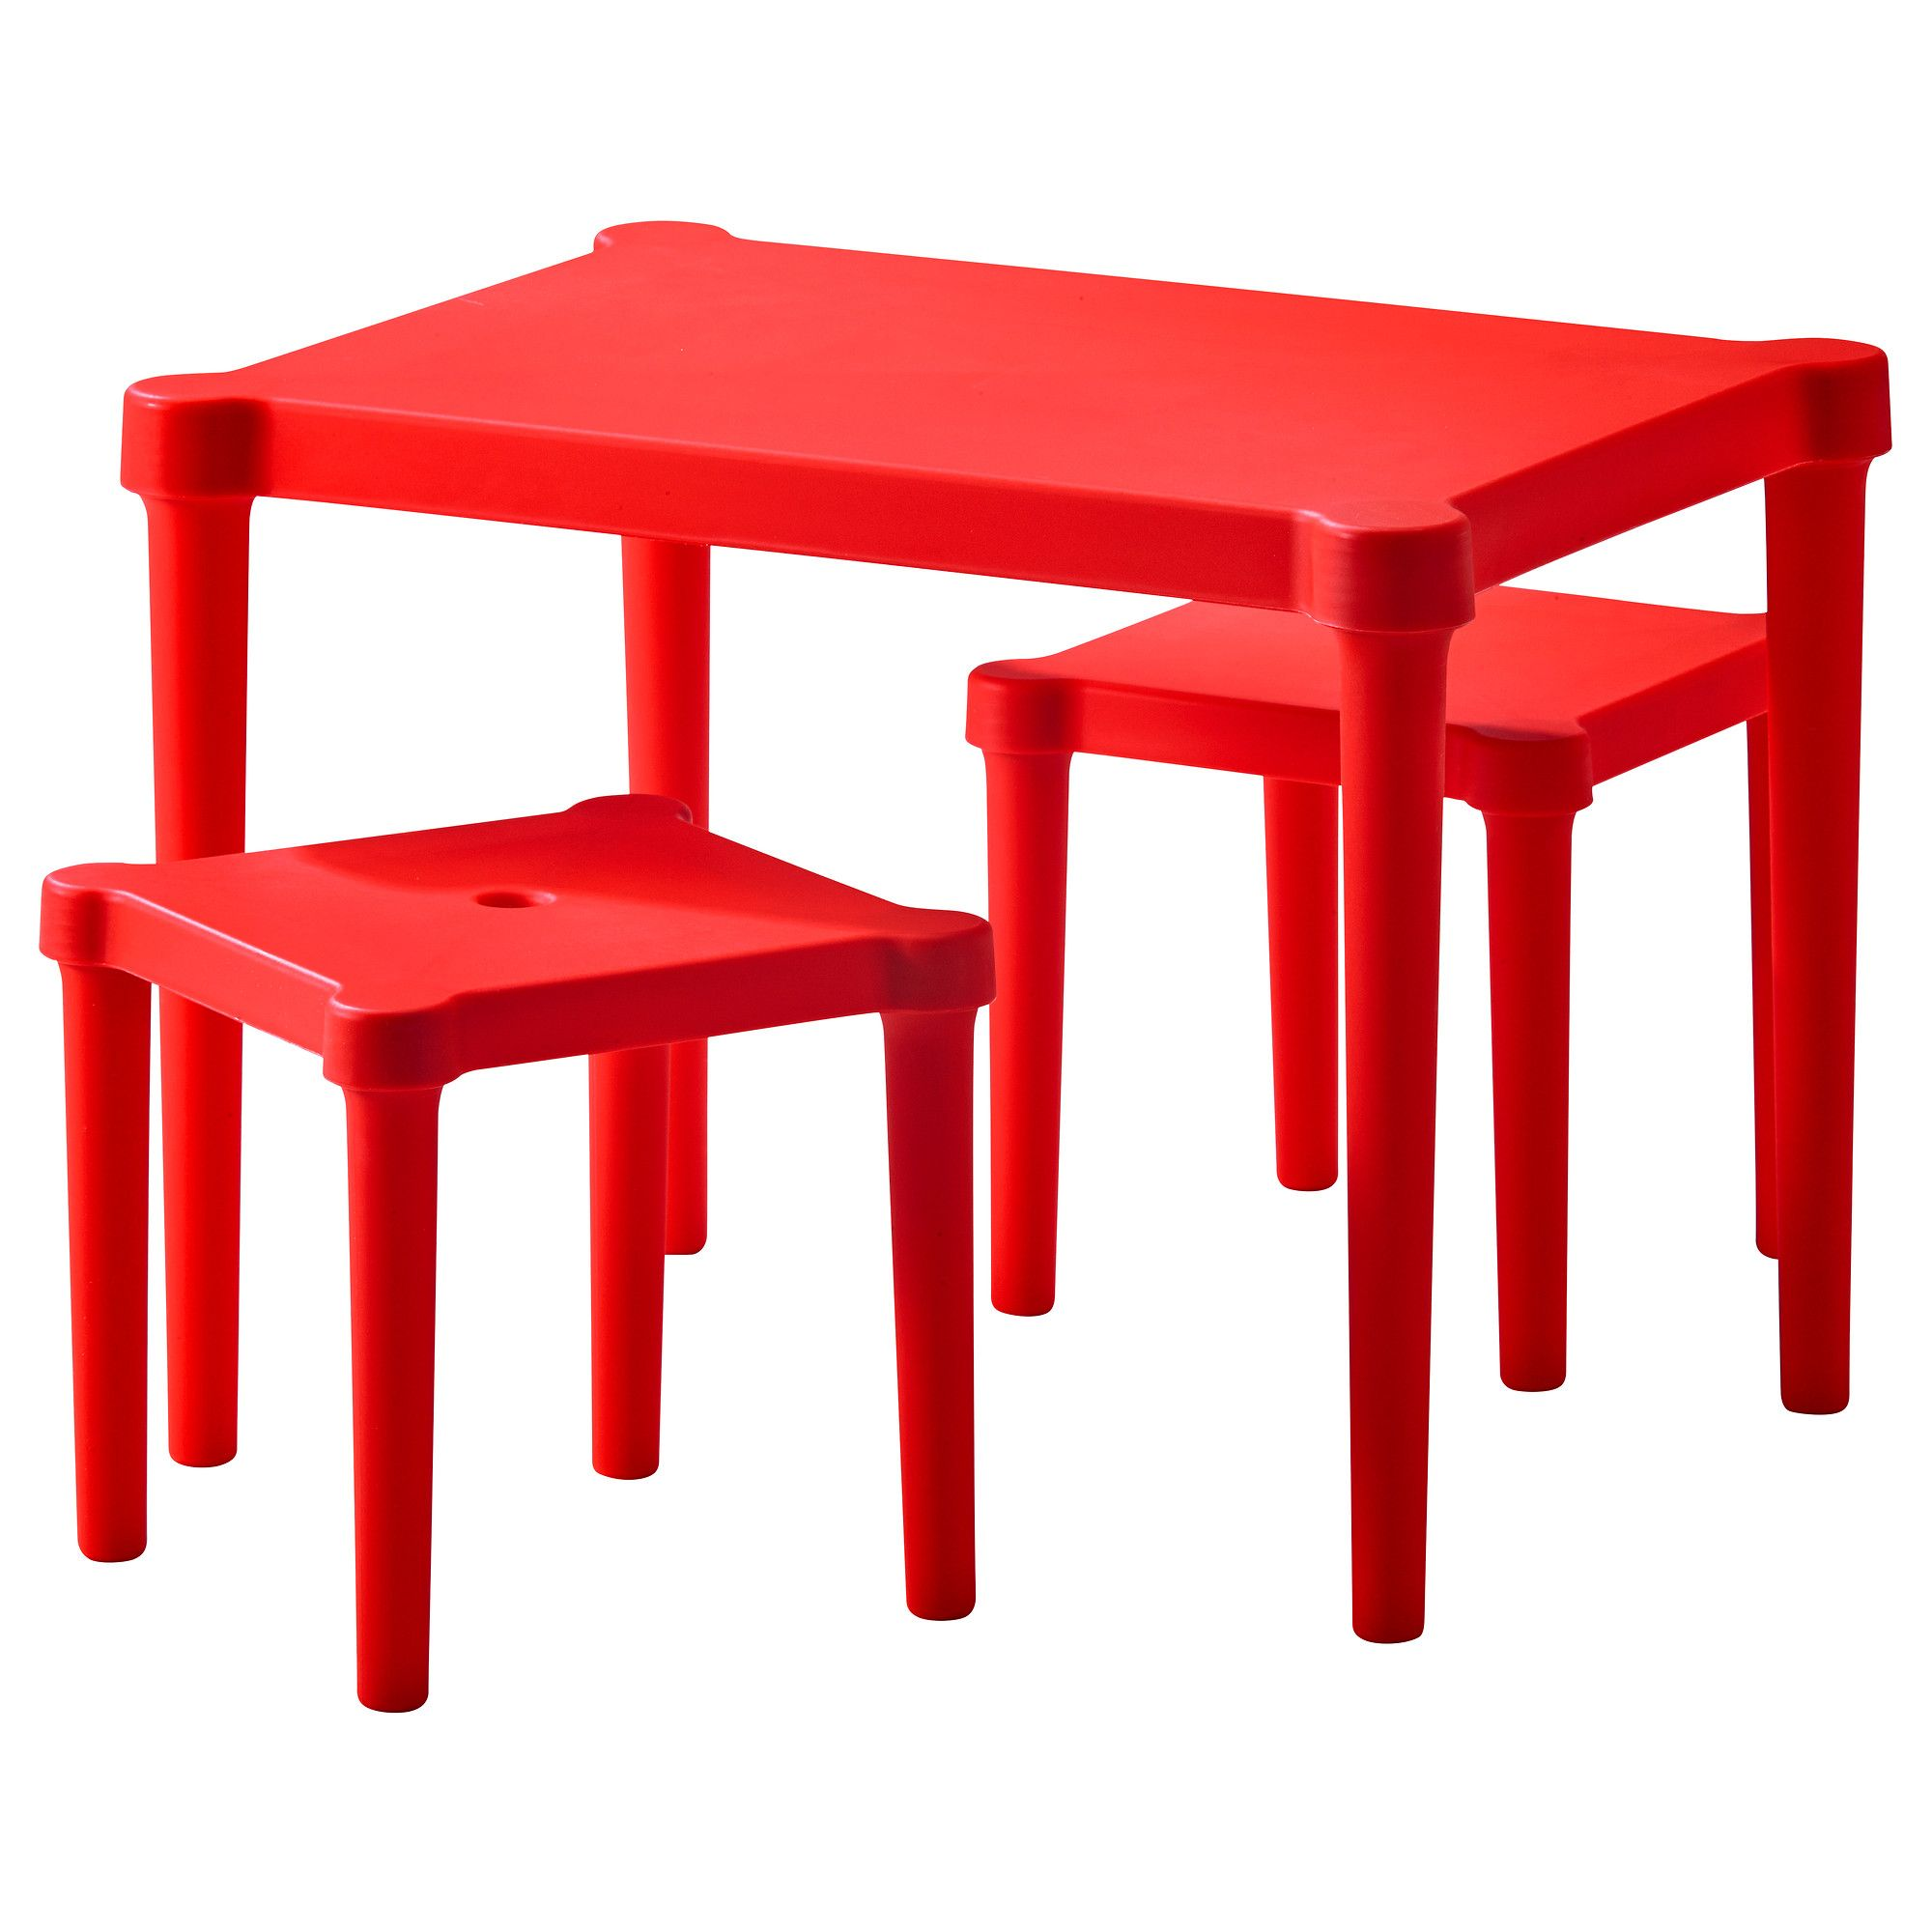 Ikea kids table and chairs - Love This Red Children S Table With 2 Stools From Ikea Perfect To Tuck Under His